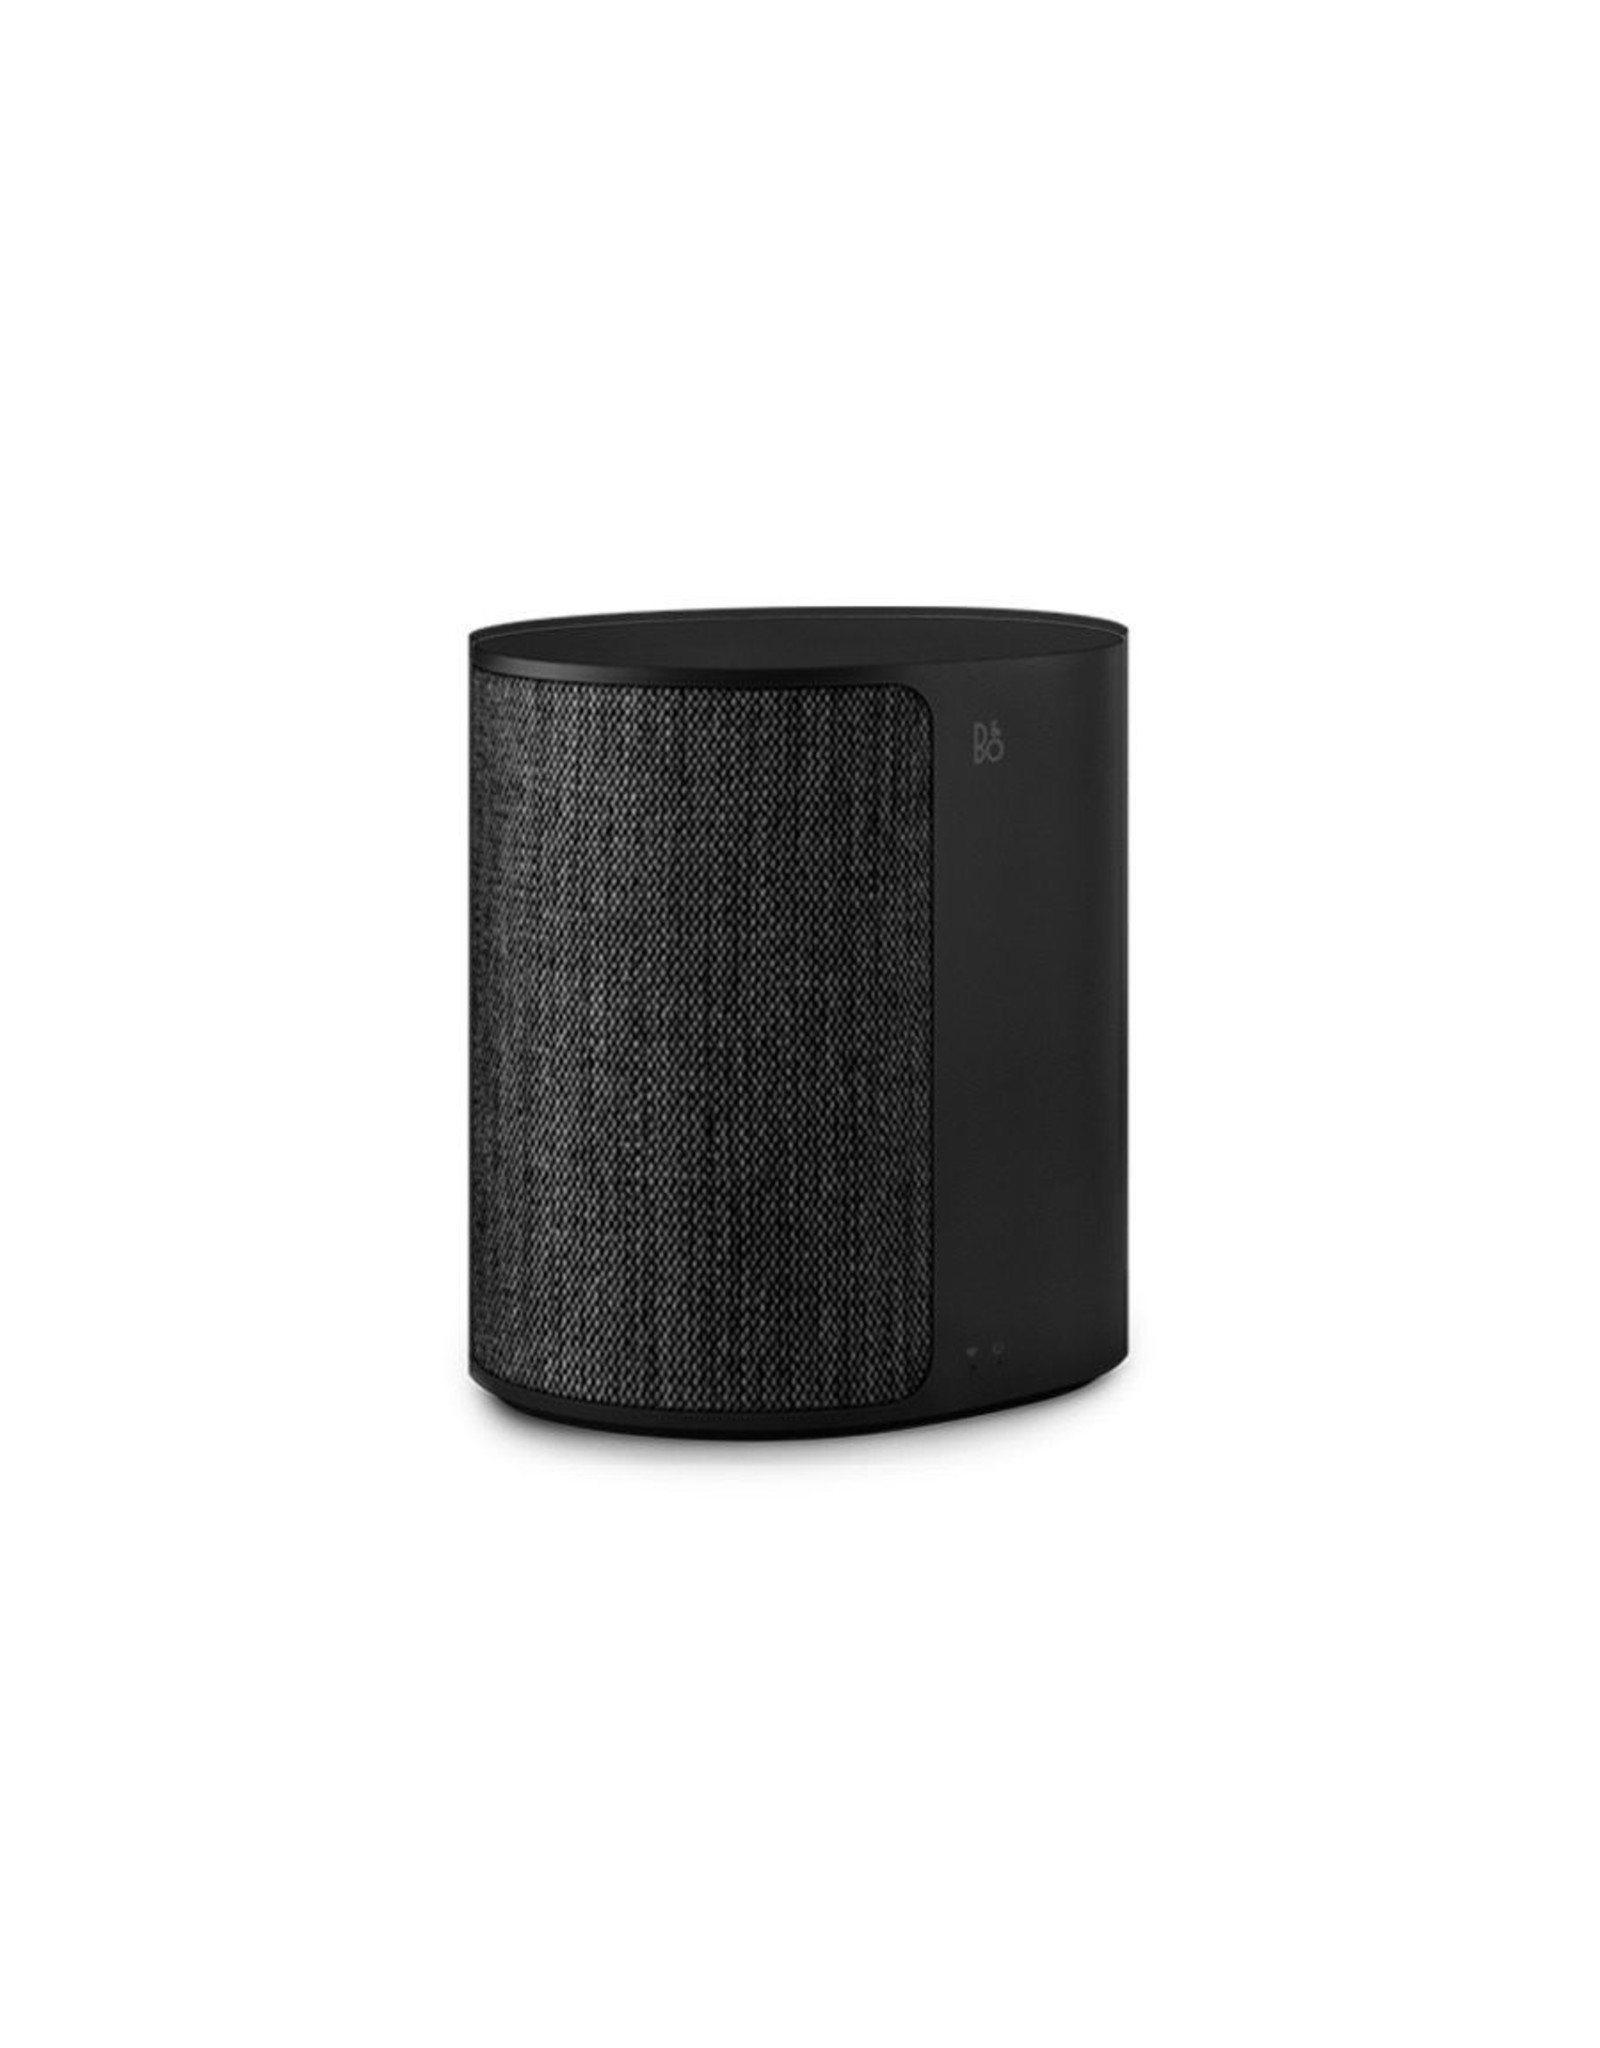 B&O Play Beoplay M3 couverture gris foncé